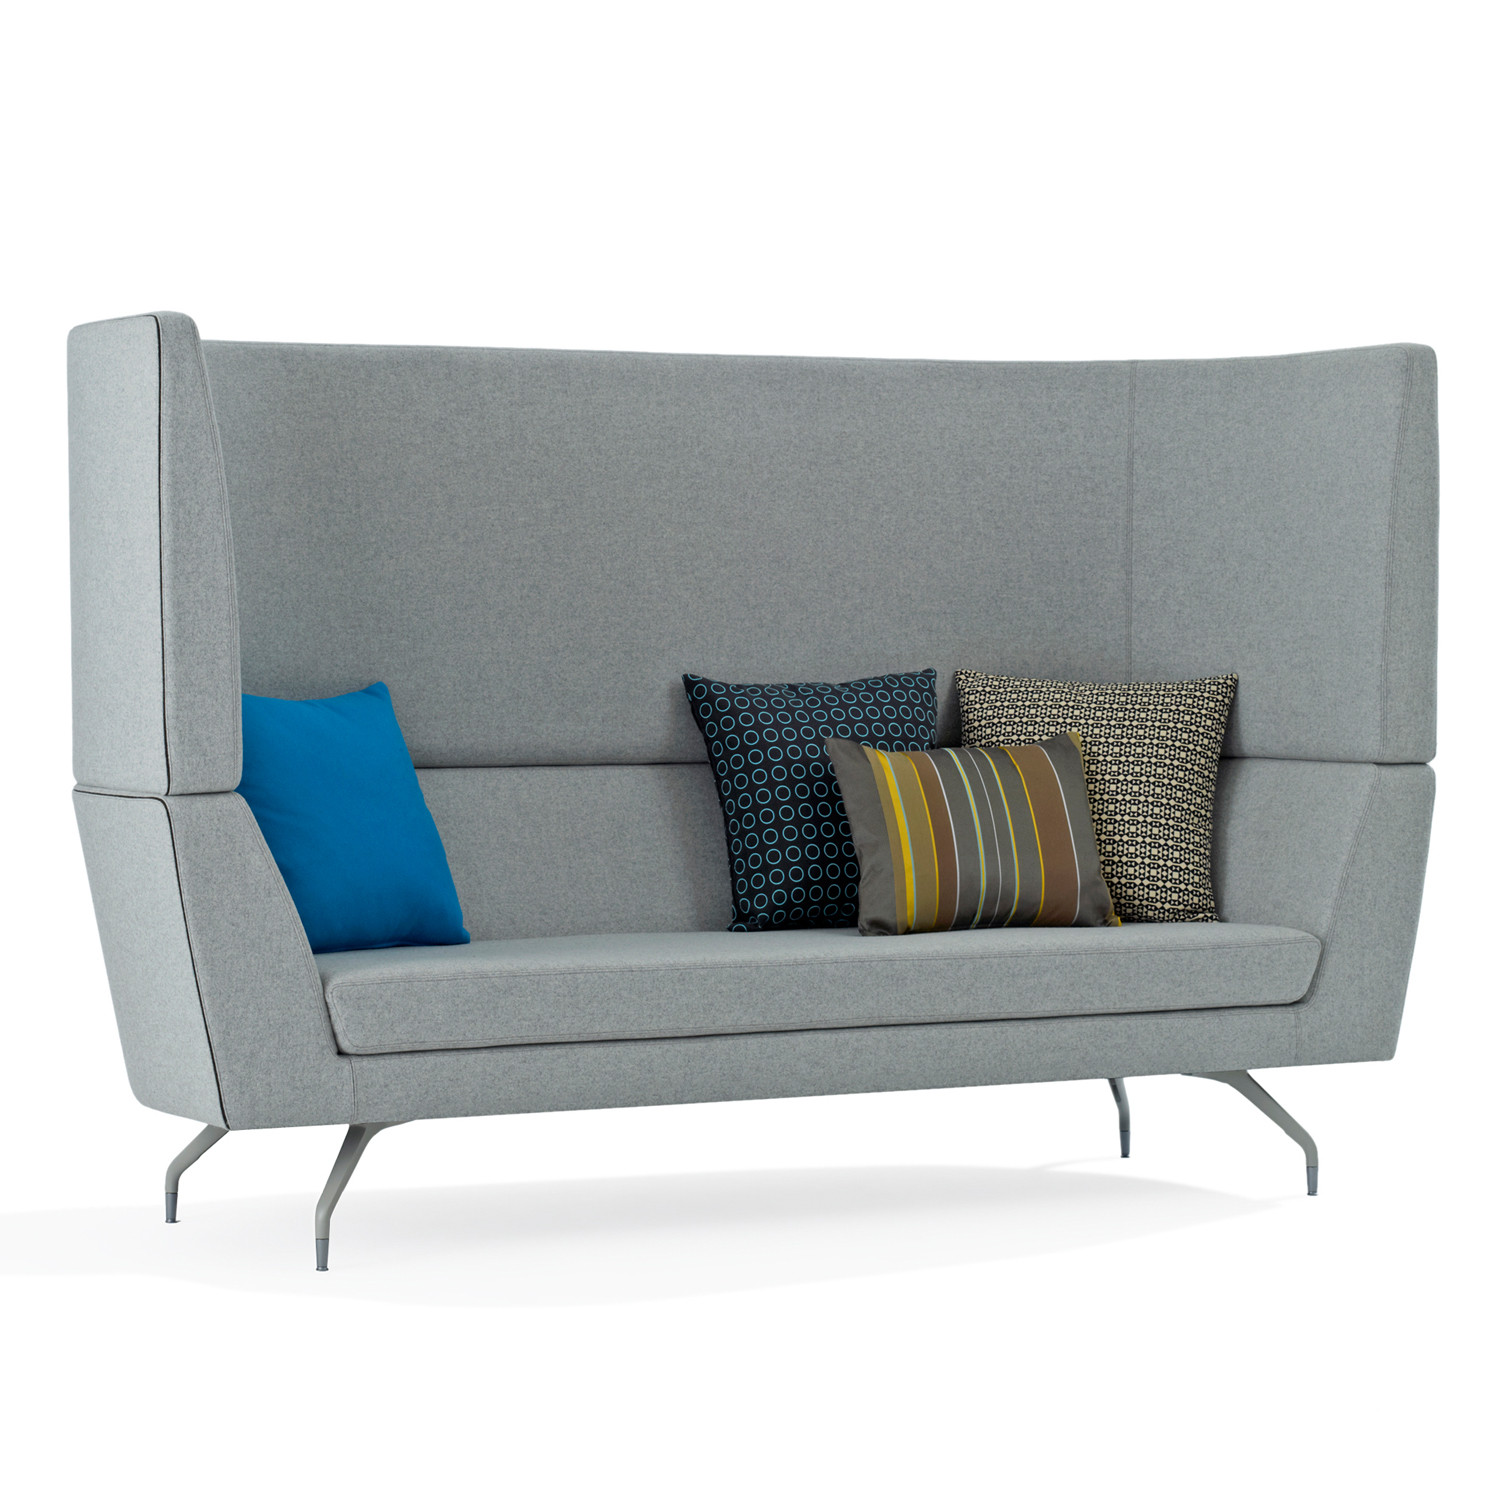 Cwtch Acoustic Sofa